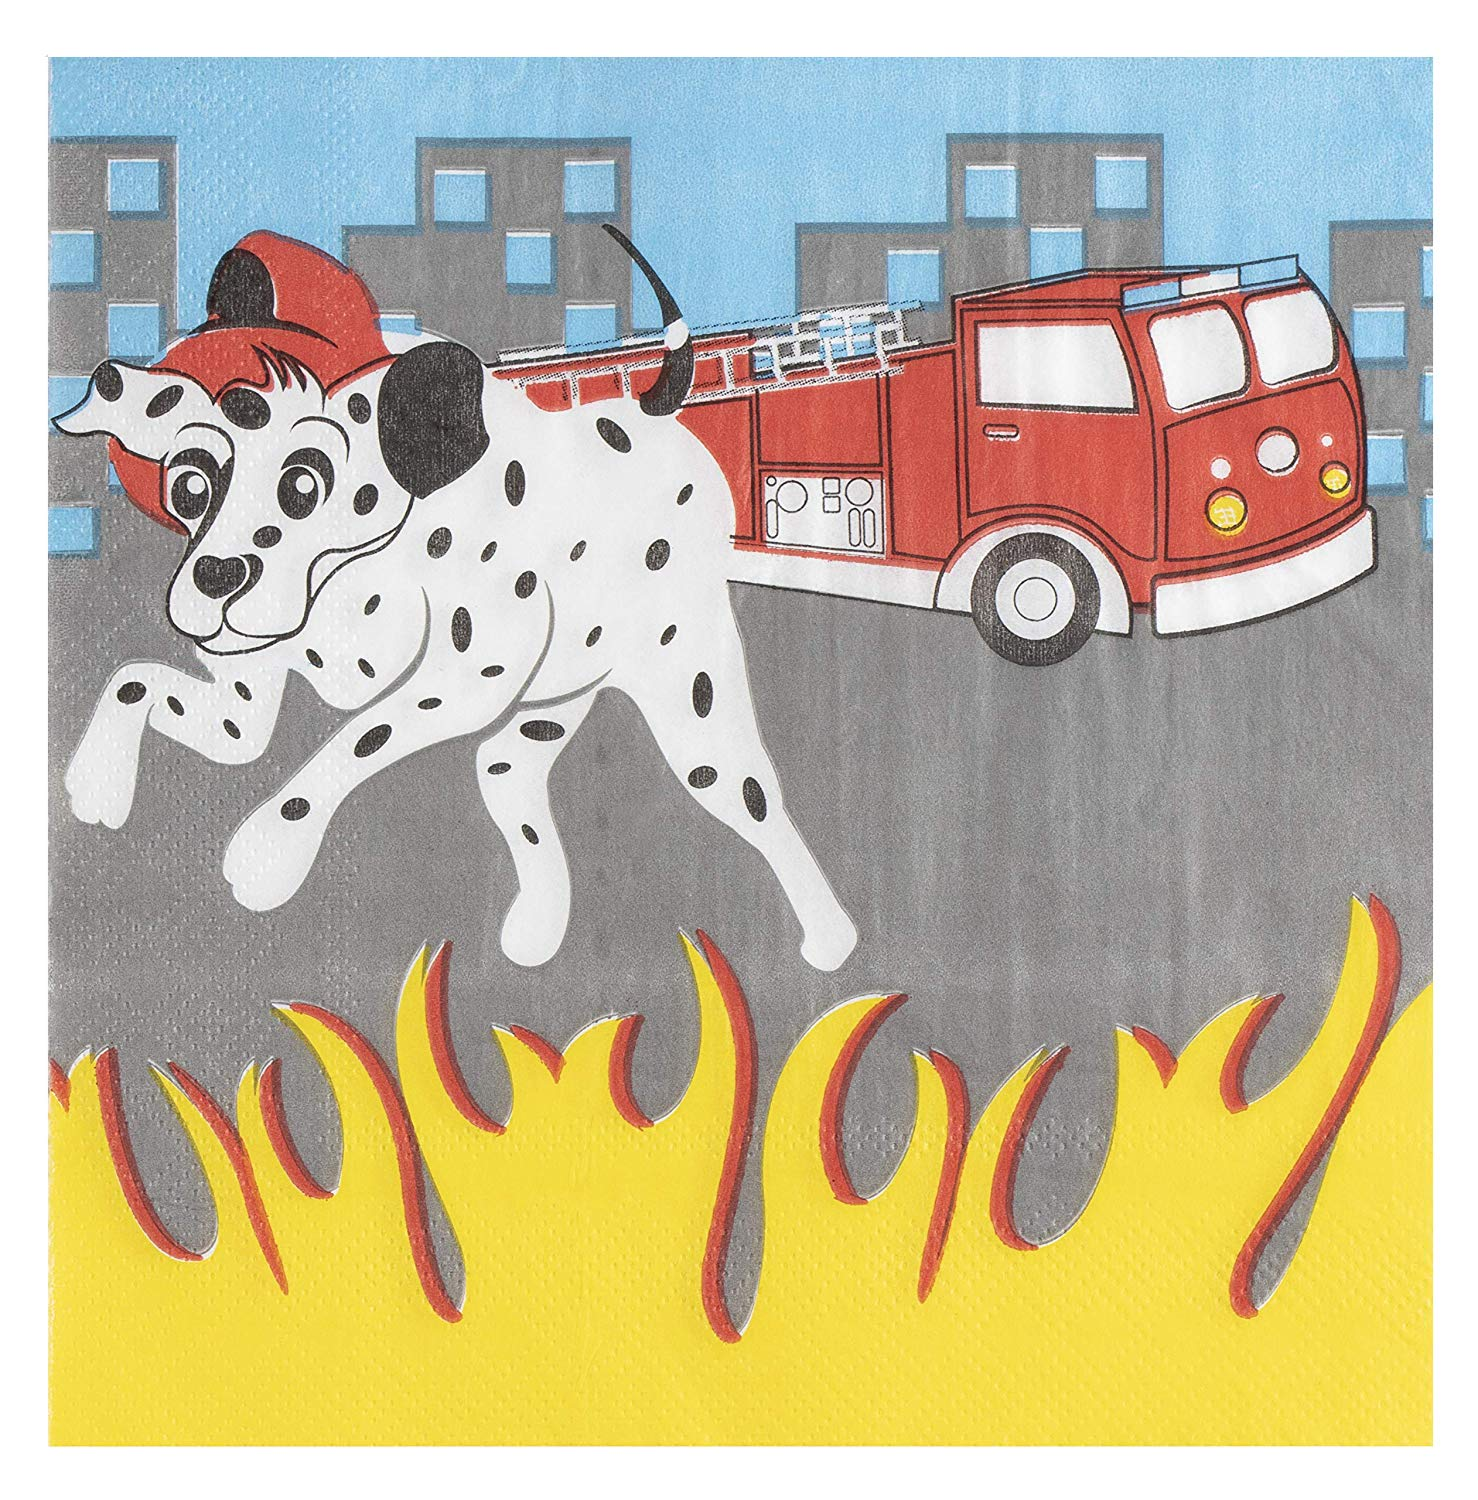 Folded 6.5 x 6.5 Inches 2-Ply Blue Panda Cocktail Napkins Disposable Paper Napkins Firetruck Party Supplies Kids Birthdays 150-Pack Luncheon Napkins Unfolded 13 x 13 Inches